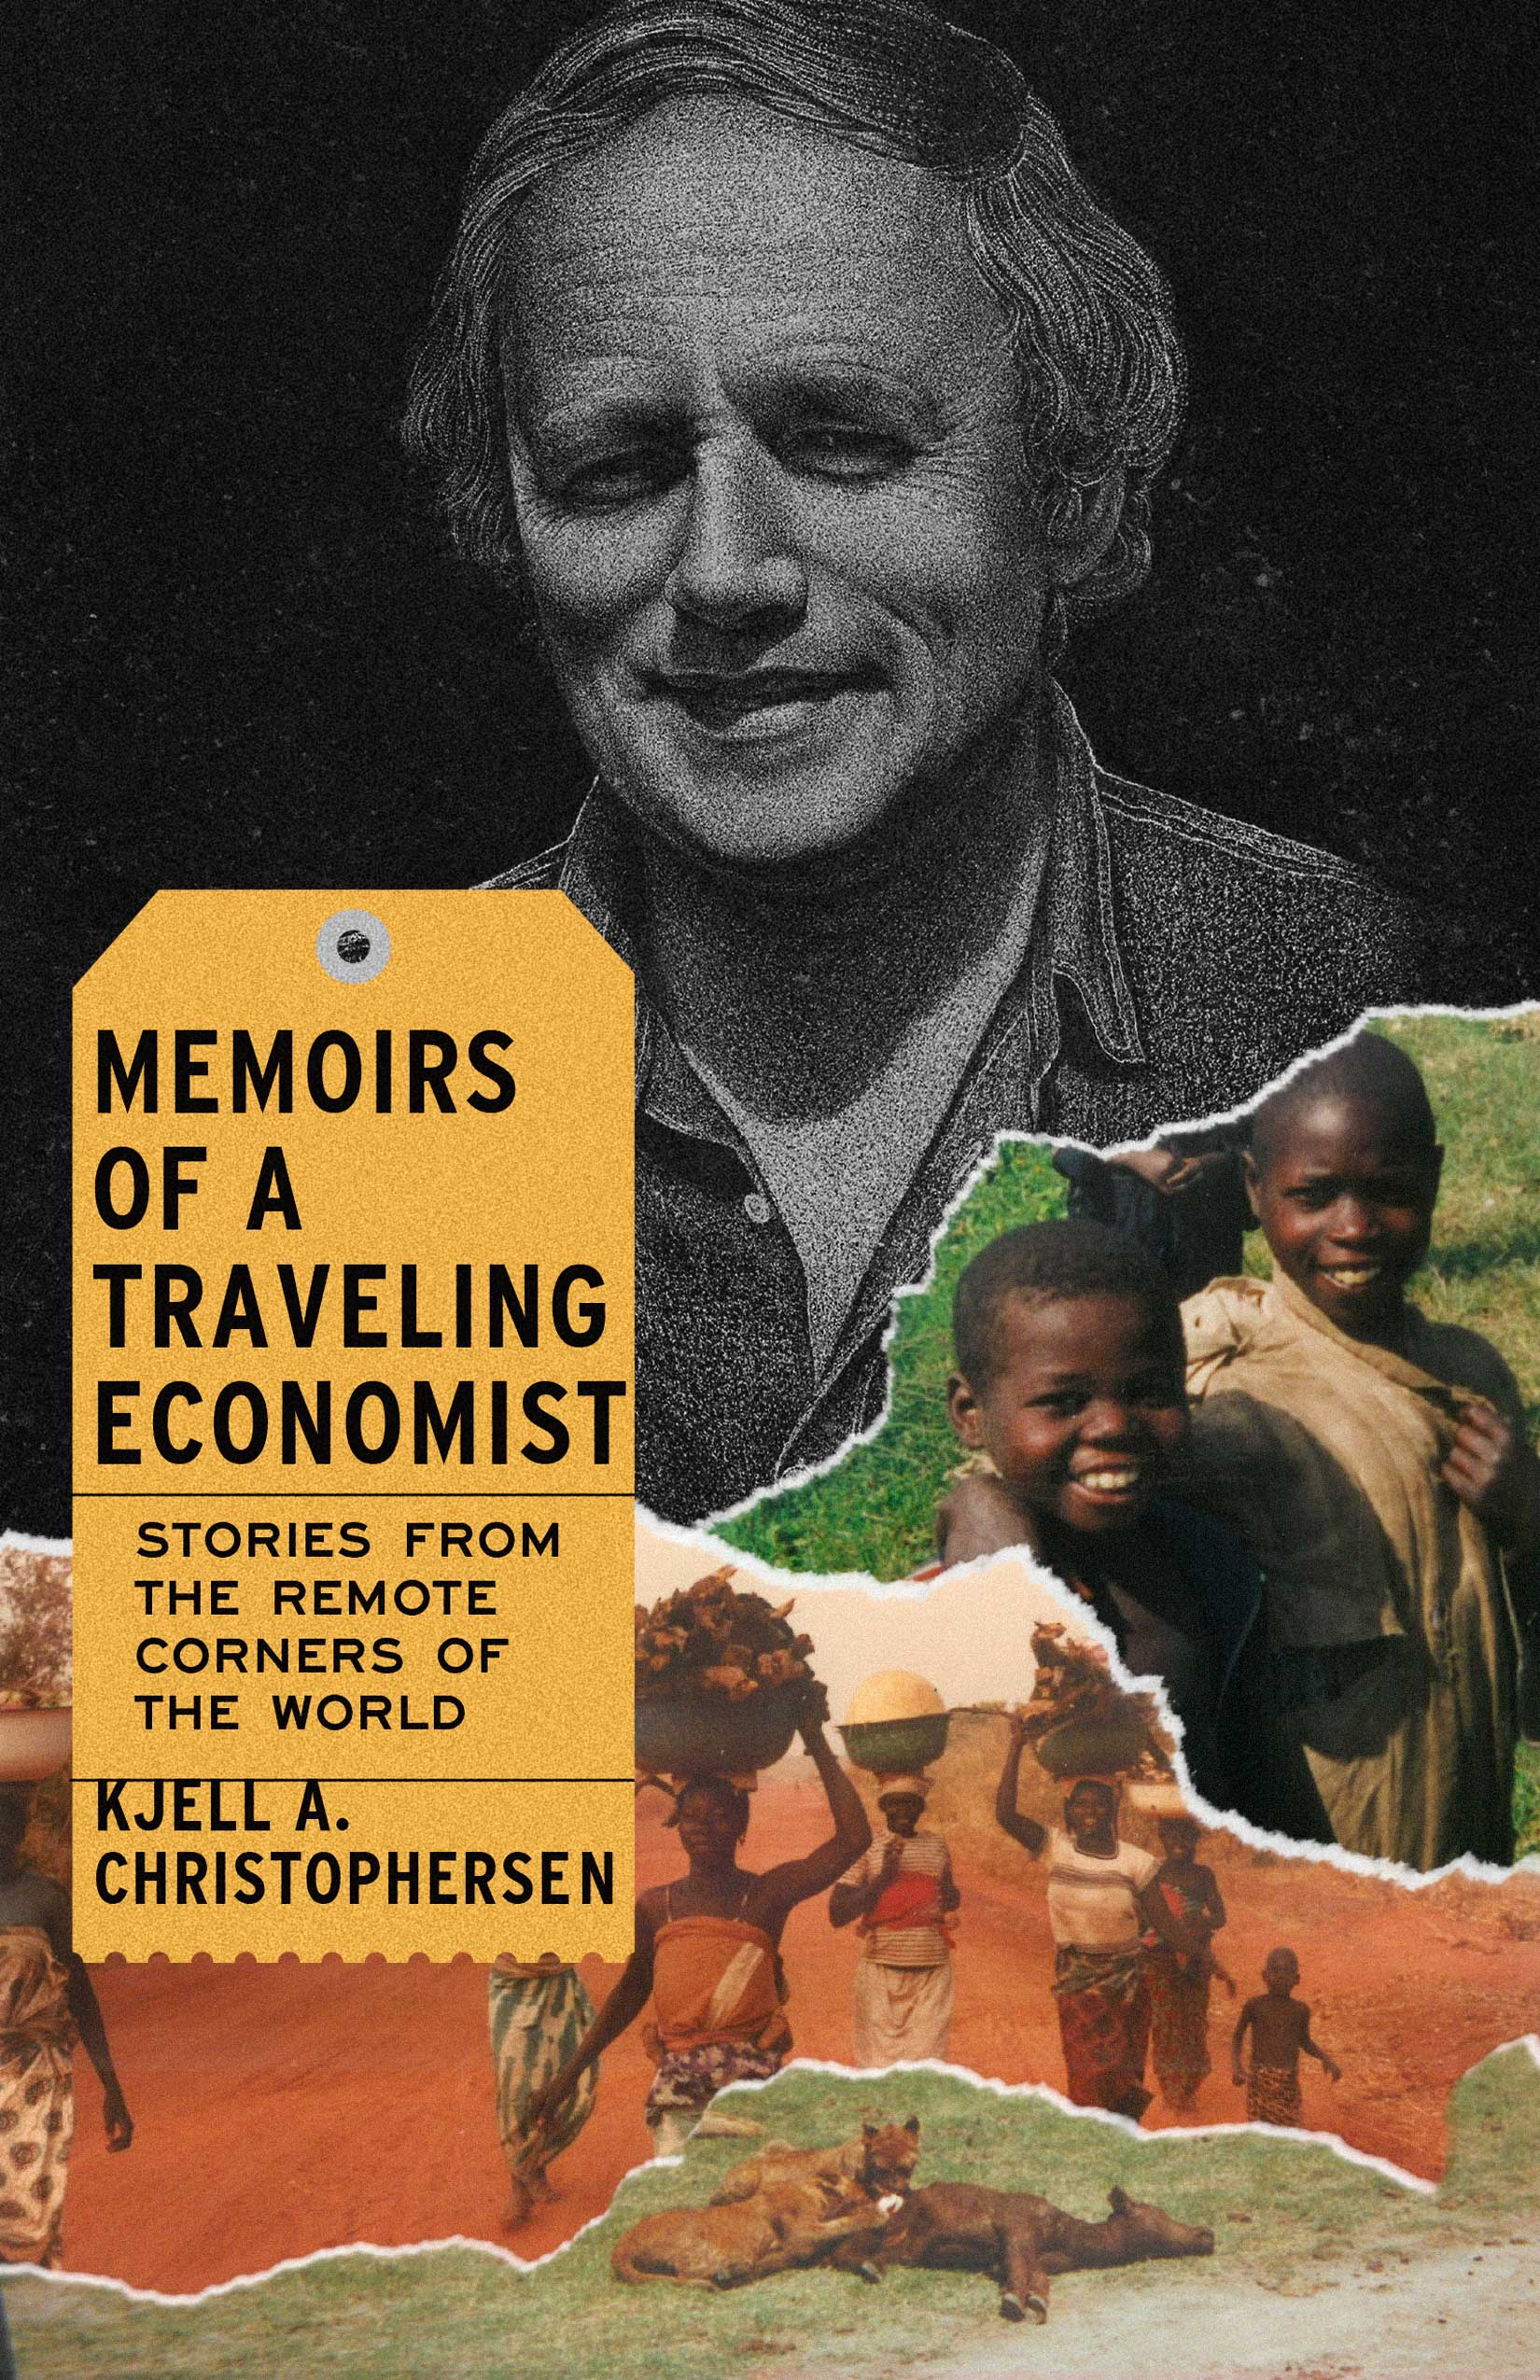 Memoirs of a Traveling Economist